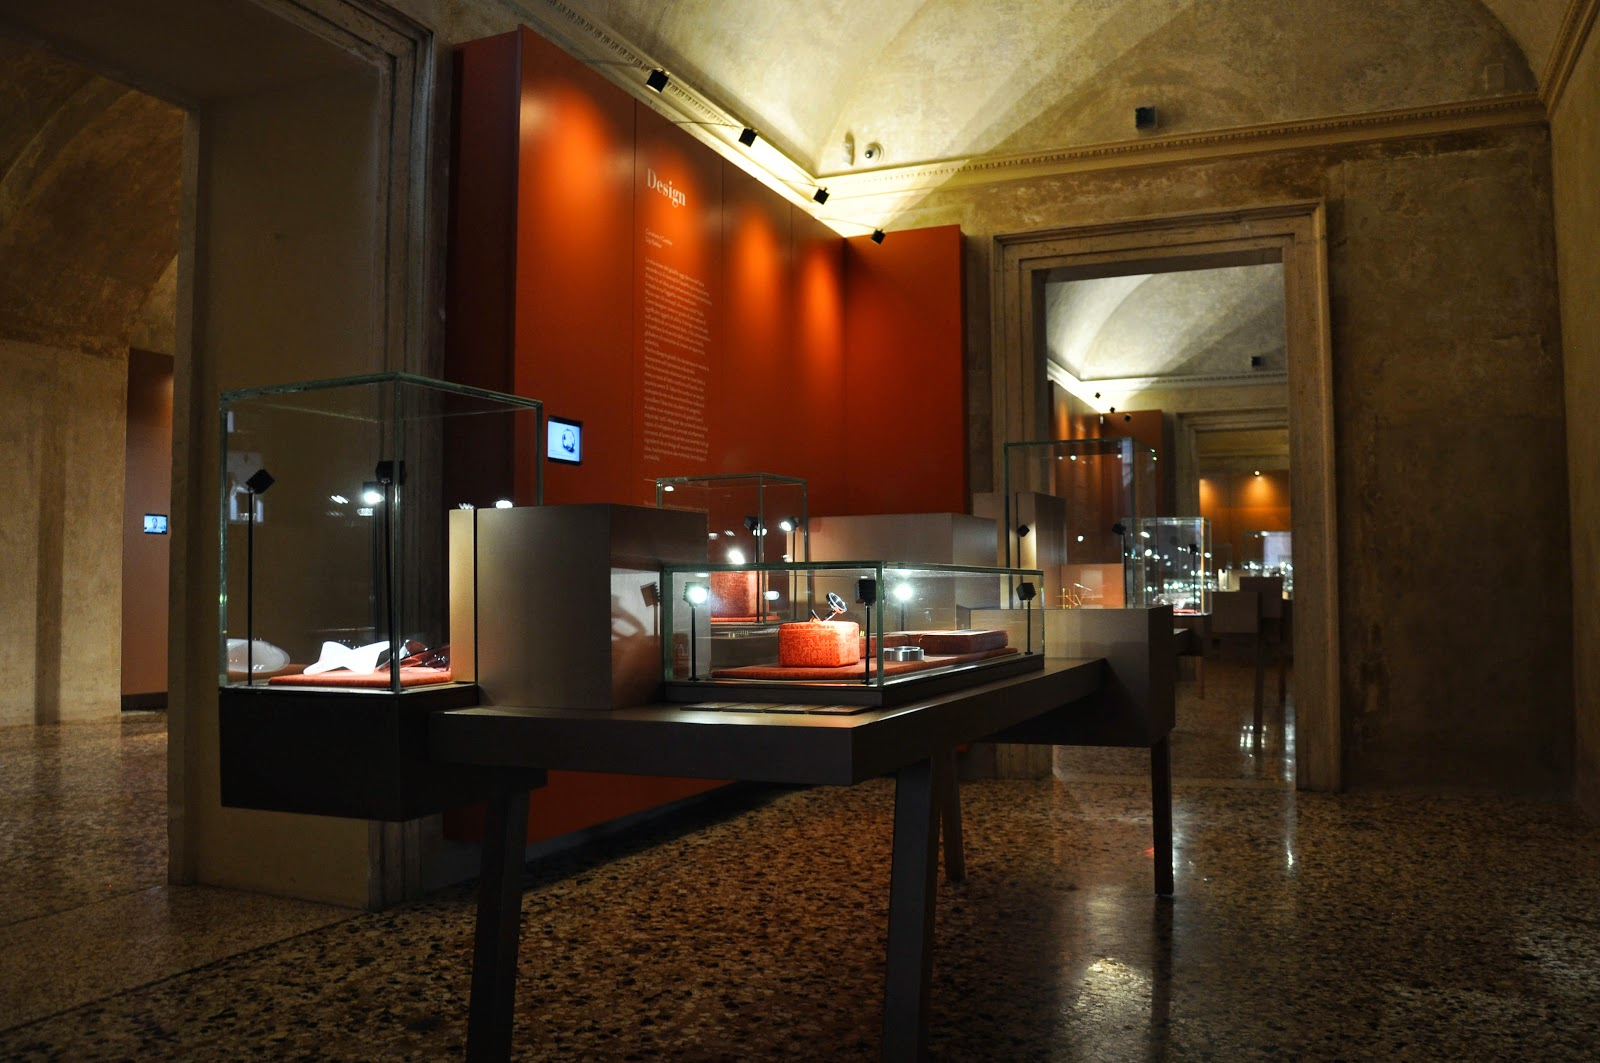 The Design room in the Museum of the Jewellery in Vicenza